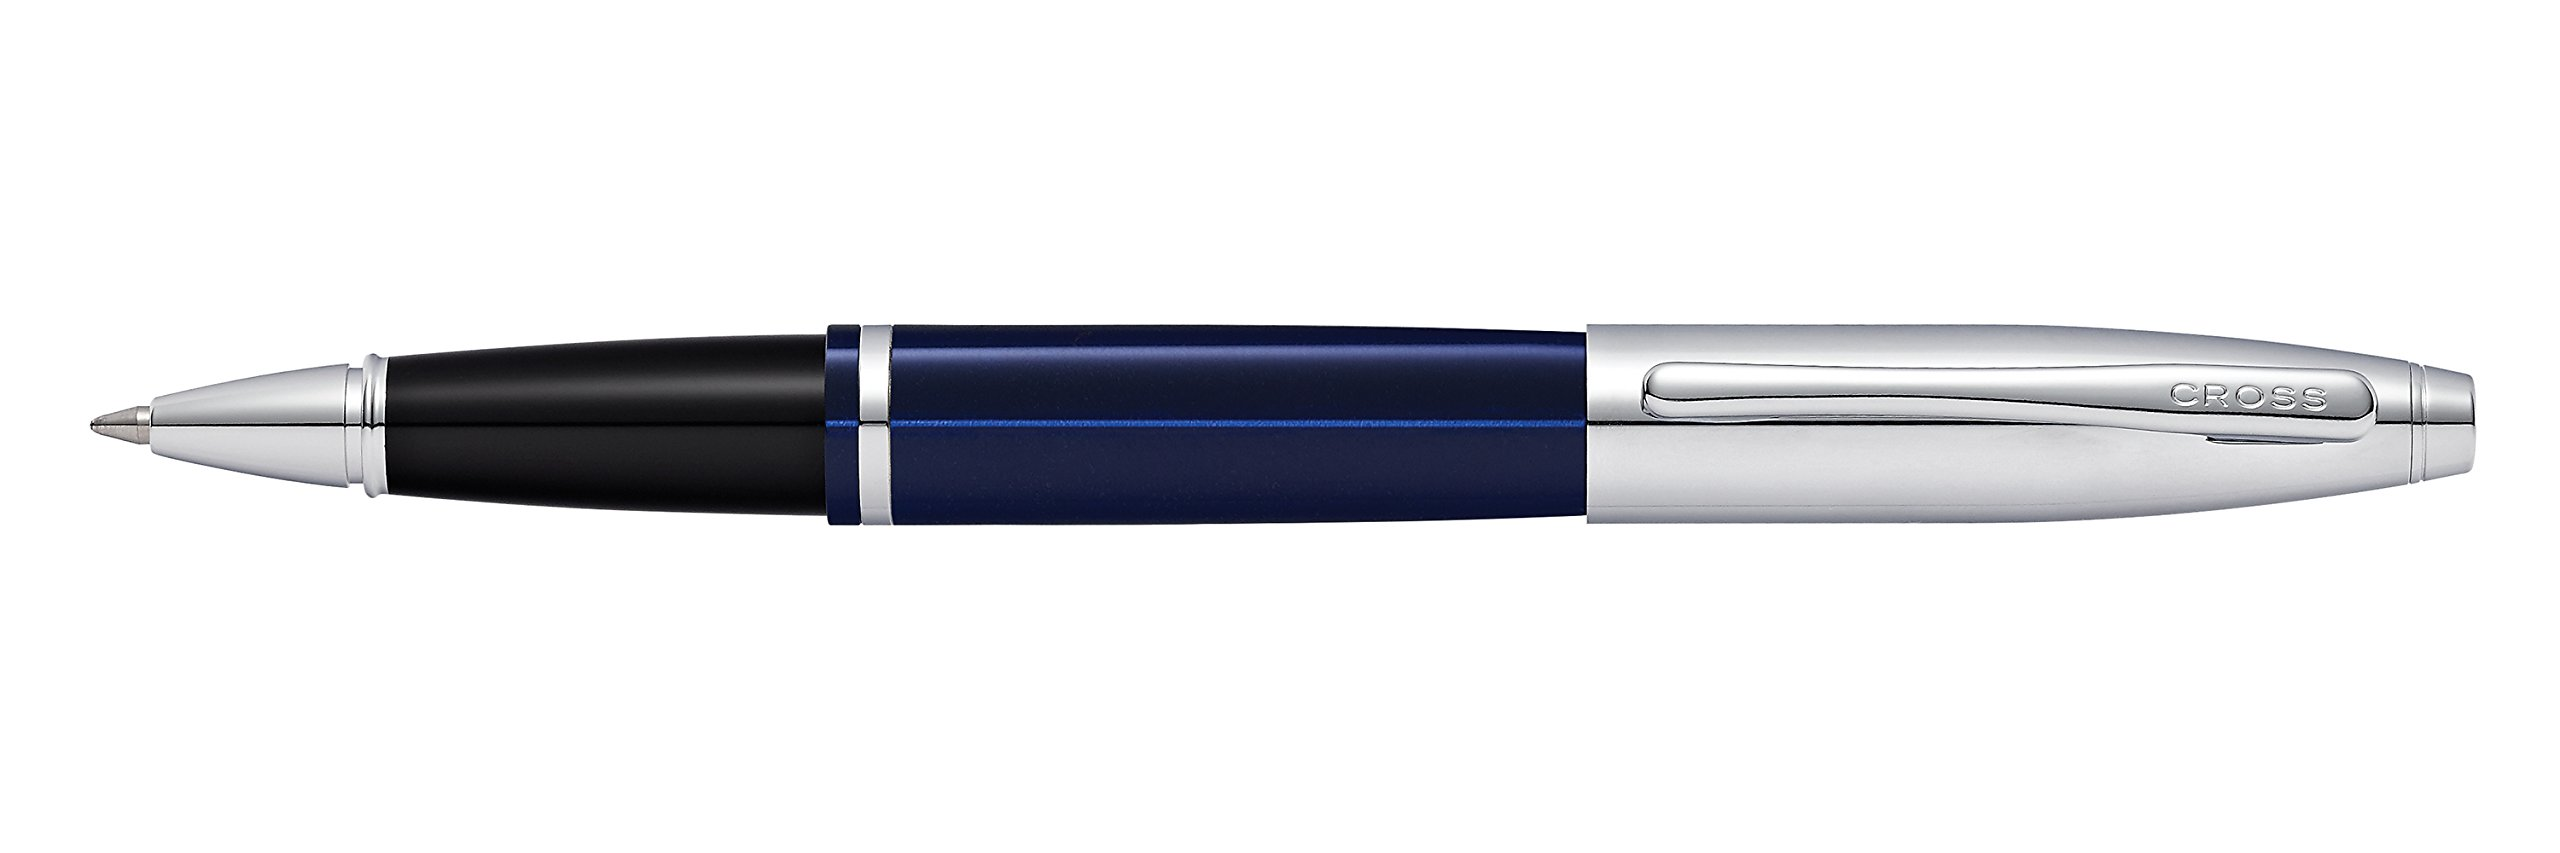 Engraved / Personalized Cross Calais 'Chrome/Blue Lacquer' Selectip Rollerball Pen with Gift Box - Custom Engraving AT0115-3 by Marketfair (Image #1)